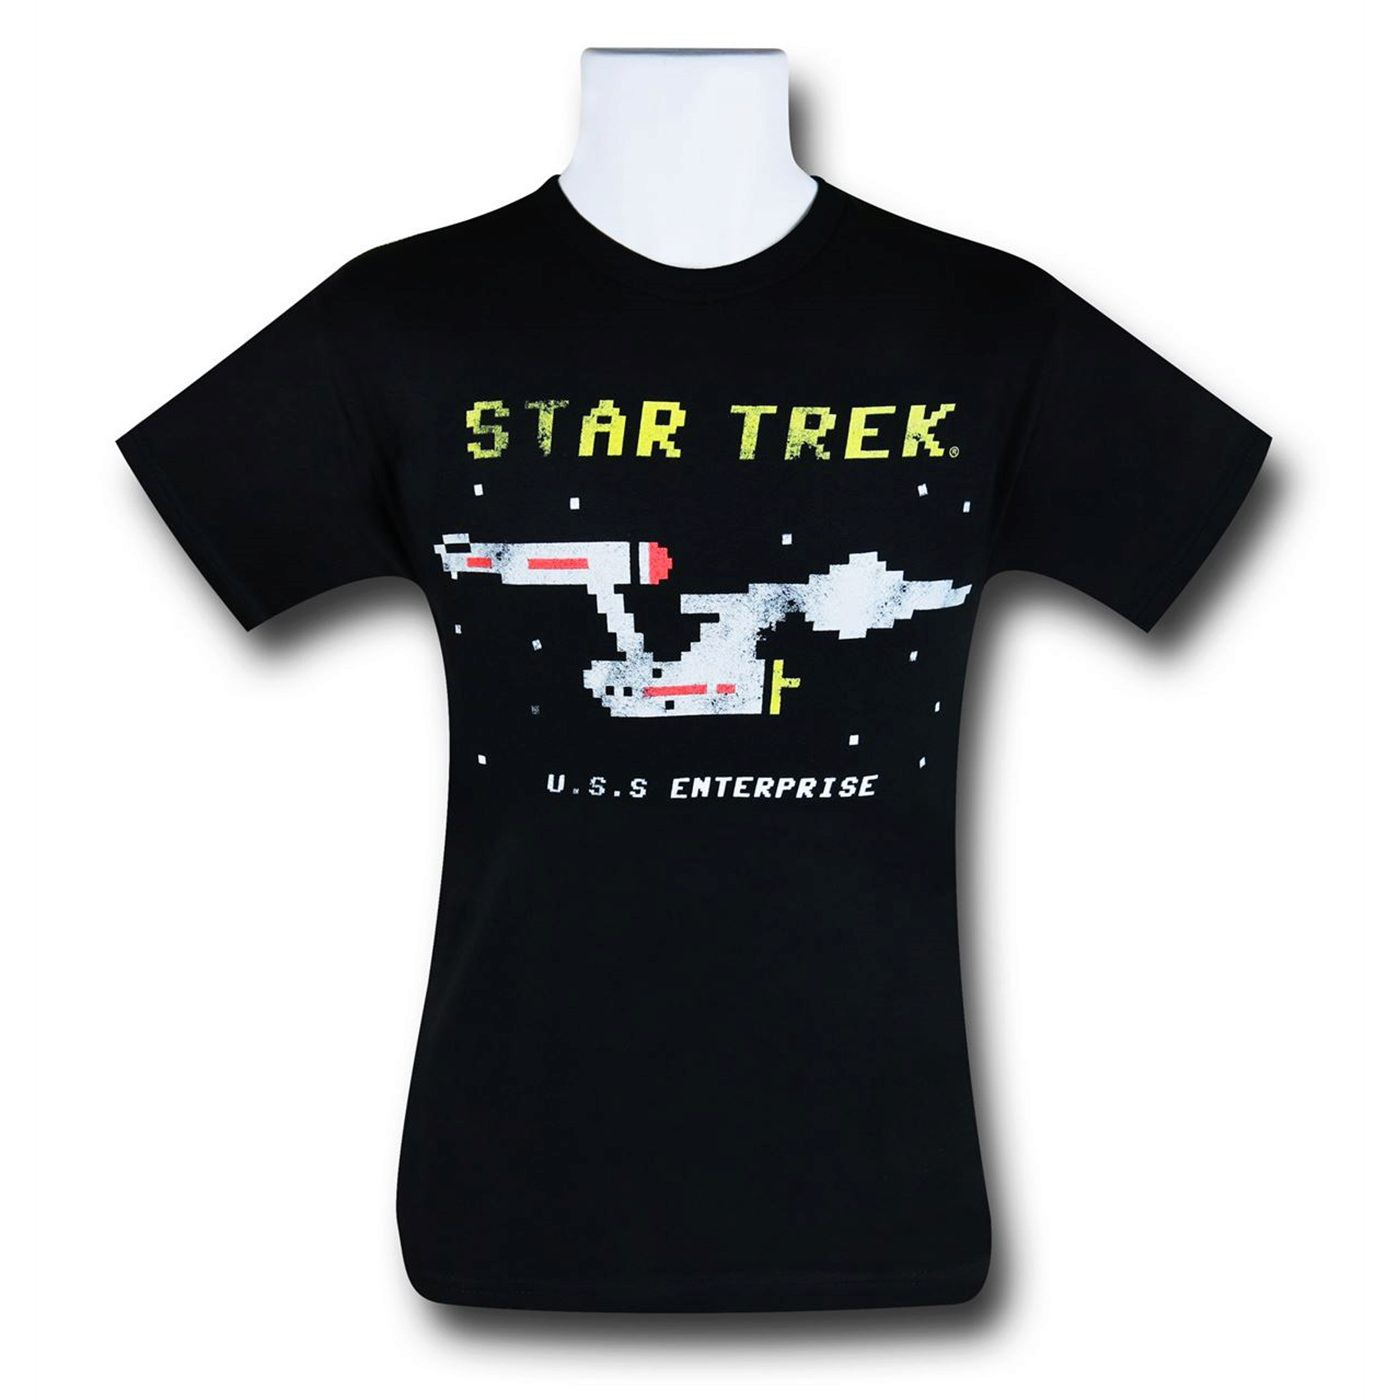 Star Trek Arcade T-Shirt